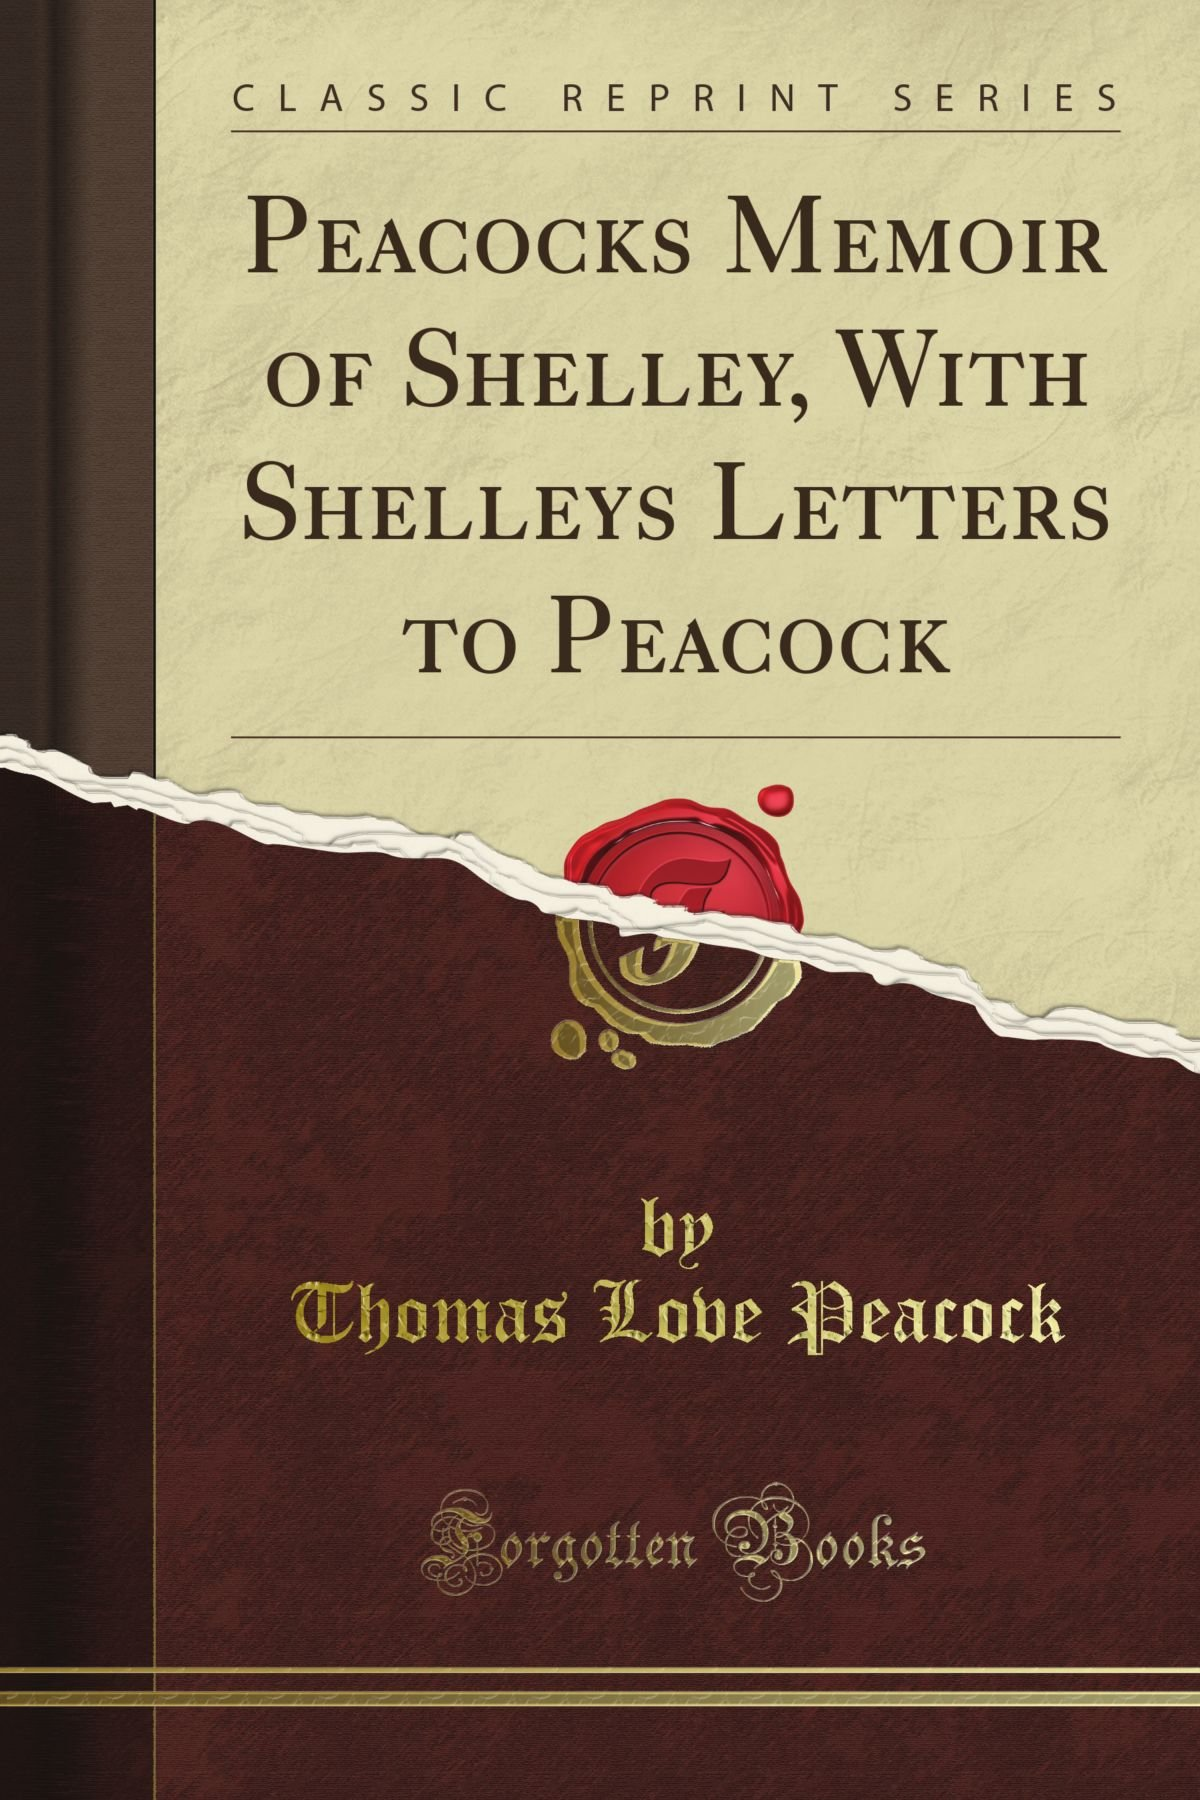 Peacock's Memoir of Shelley, With Shelley's Letters to Peacock (Classic Reprint) pdf